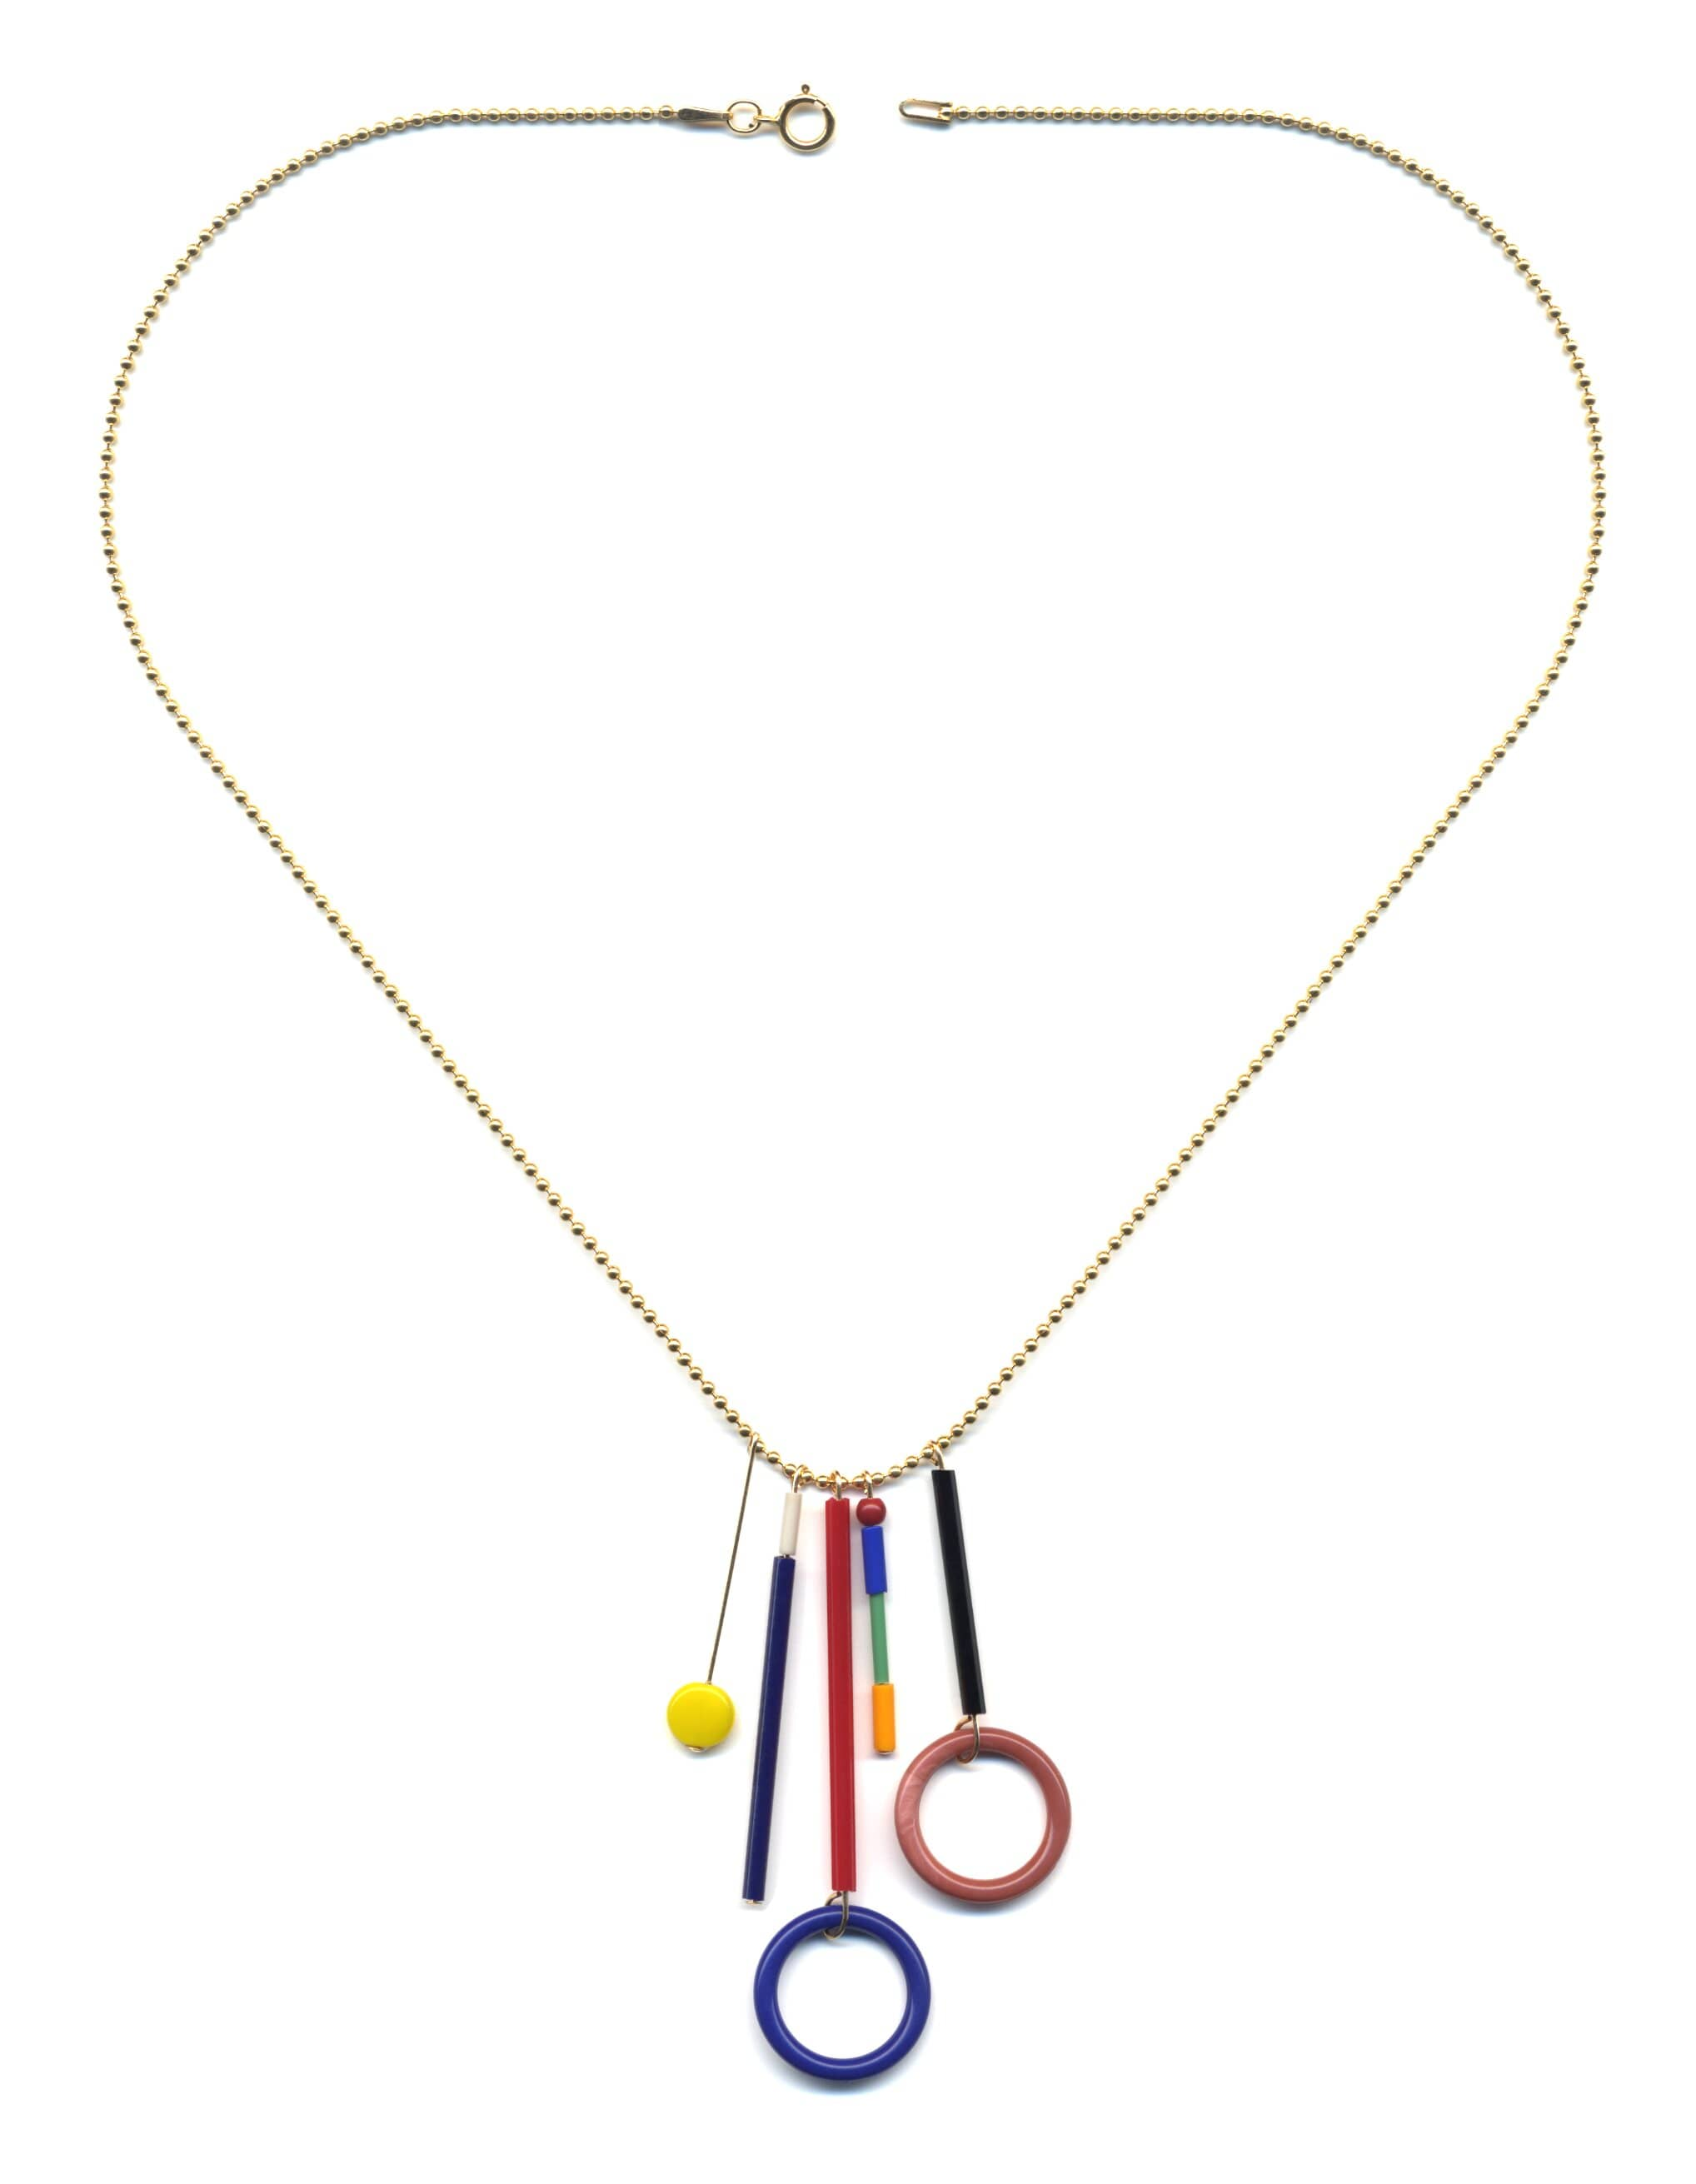 N1909 Loop Fringe Necklace